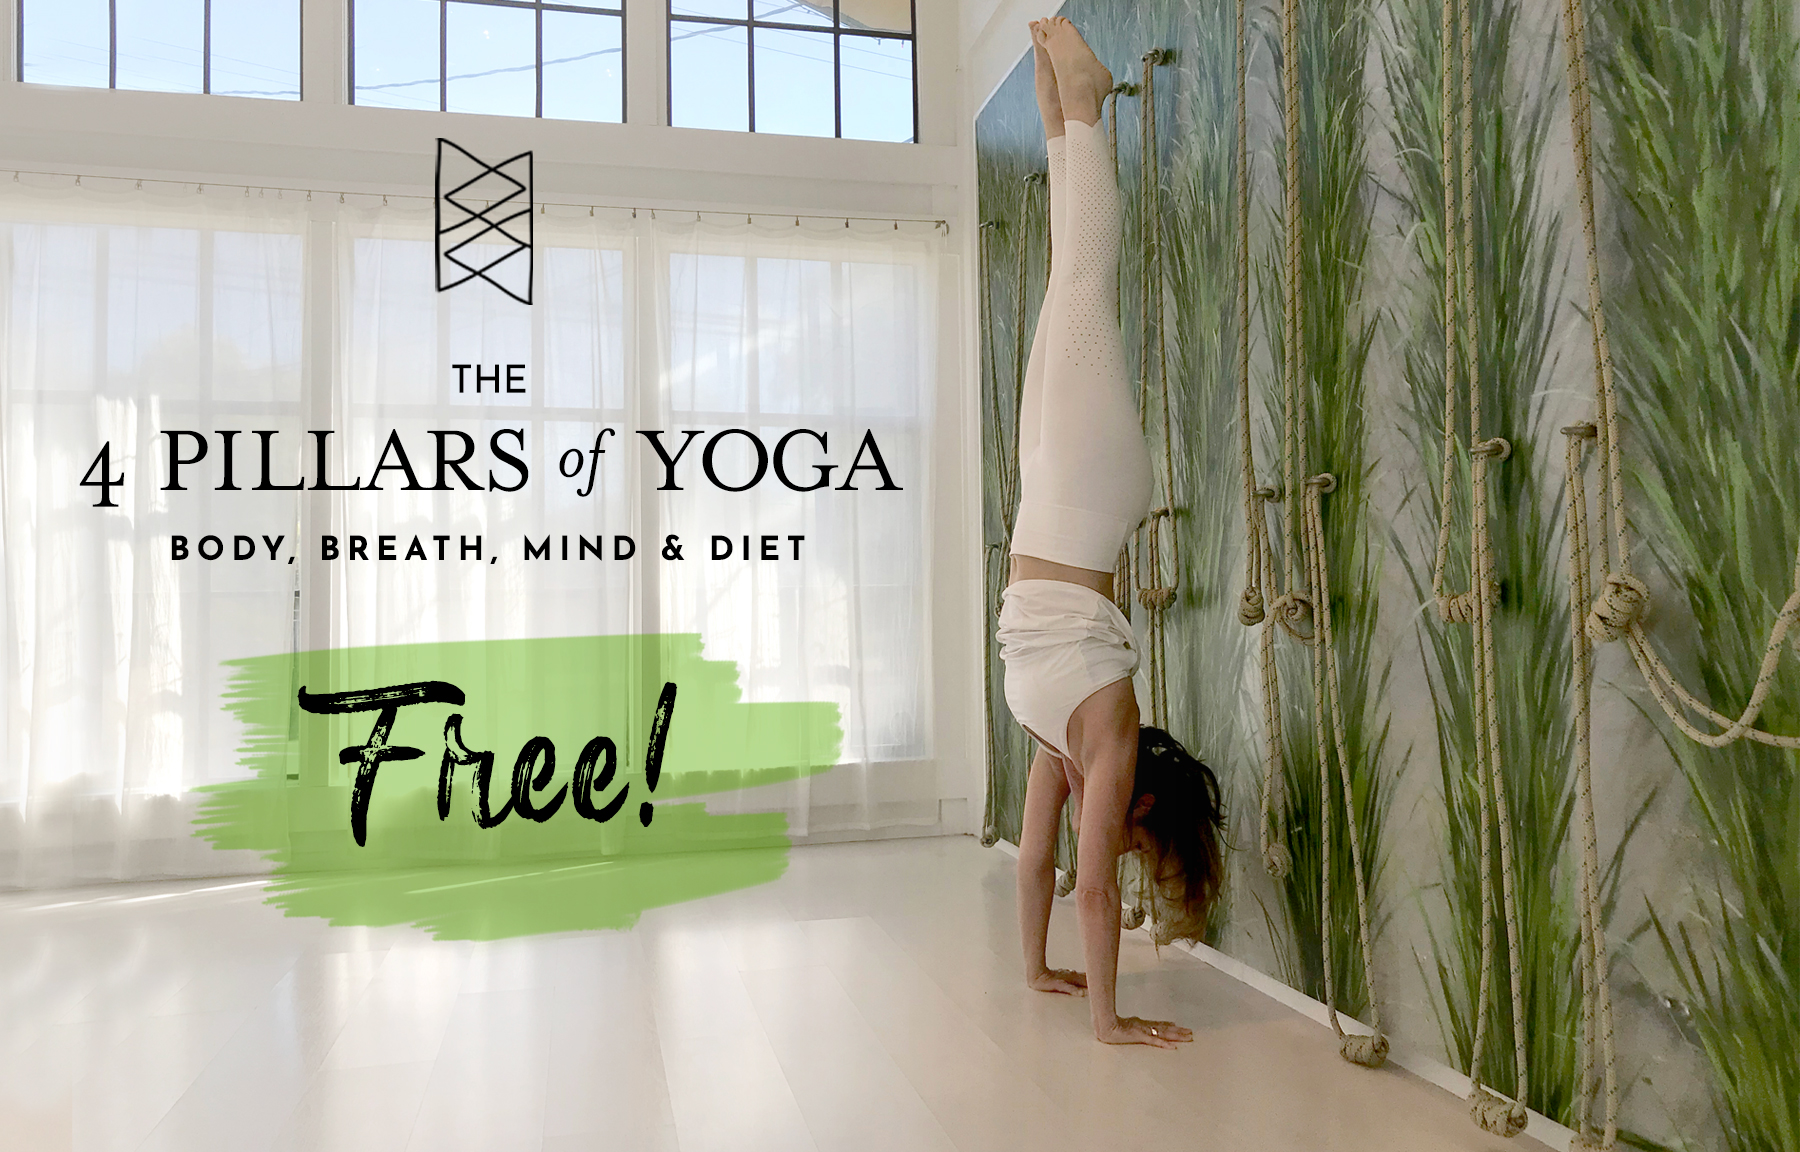 The 4 Pillars of Yoga: Body, Breath, Mind & Diet. Free!